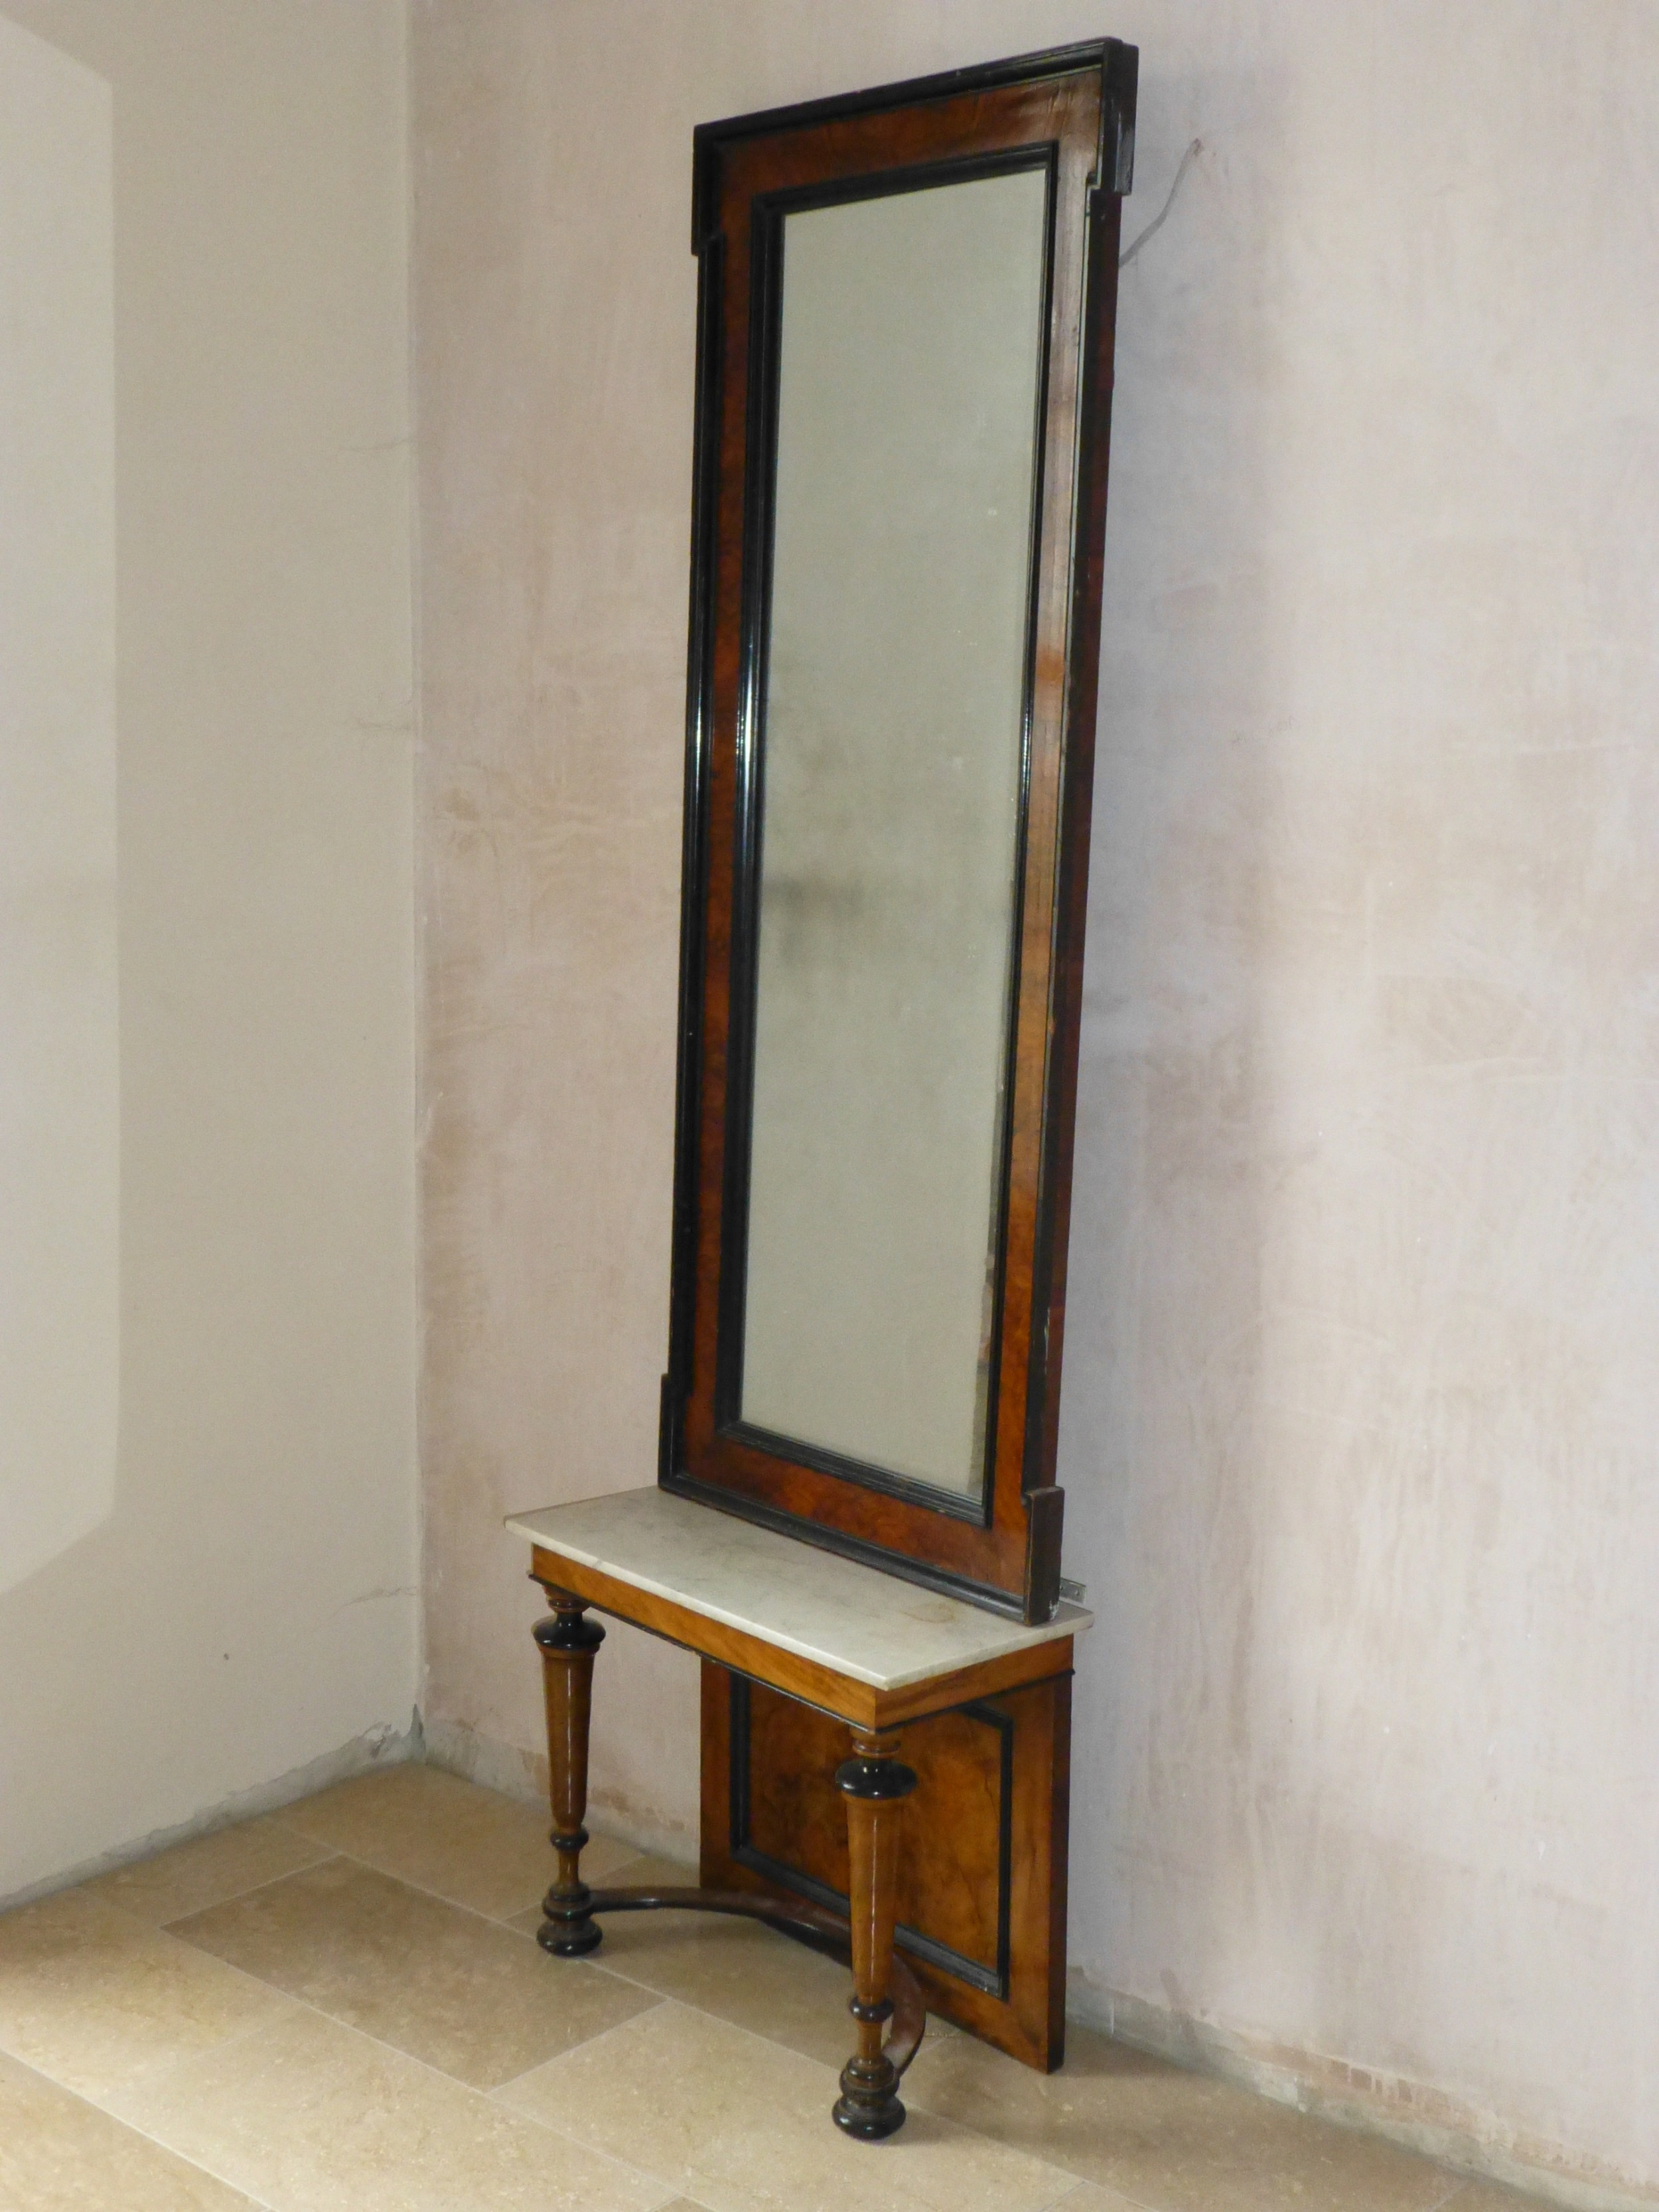 19th century burr walnut marble topped console table and pier mirror